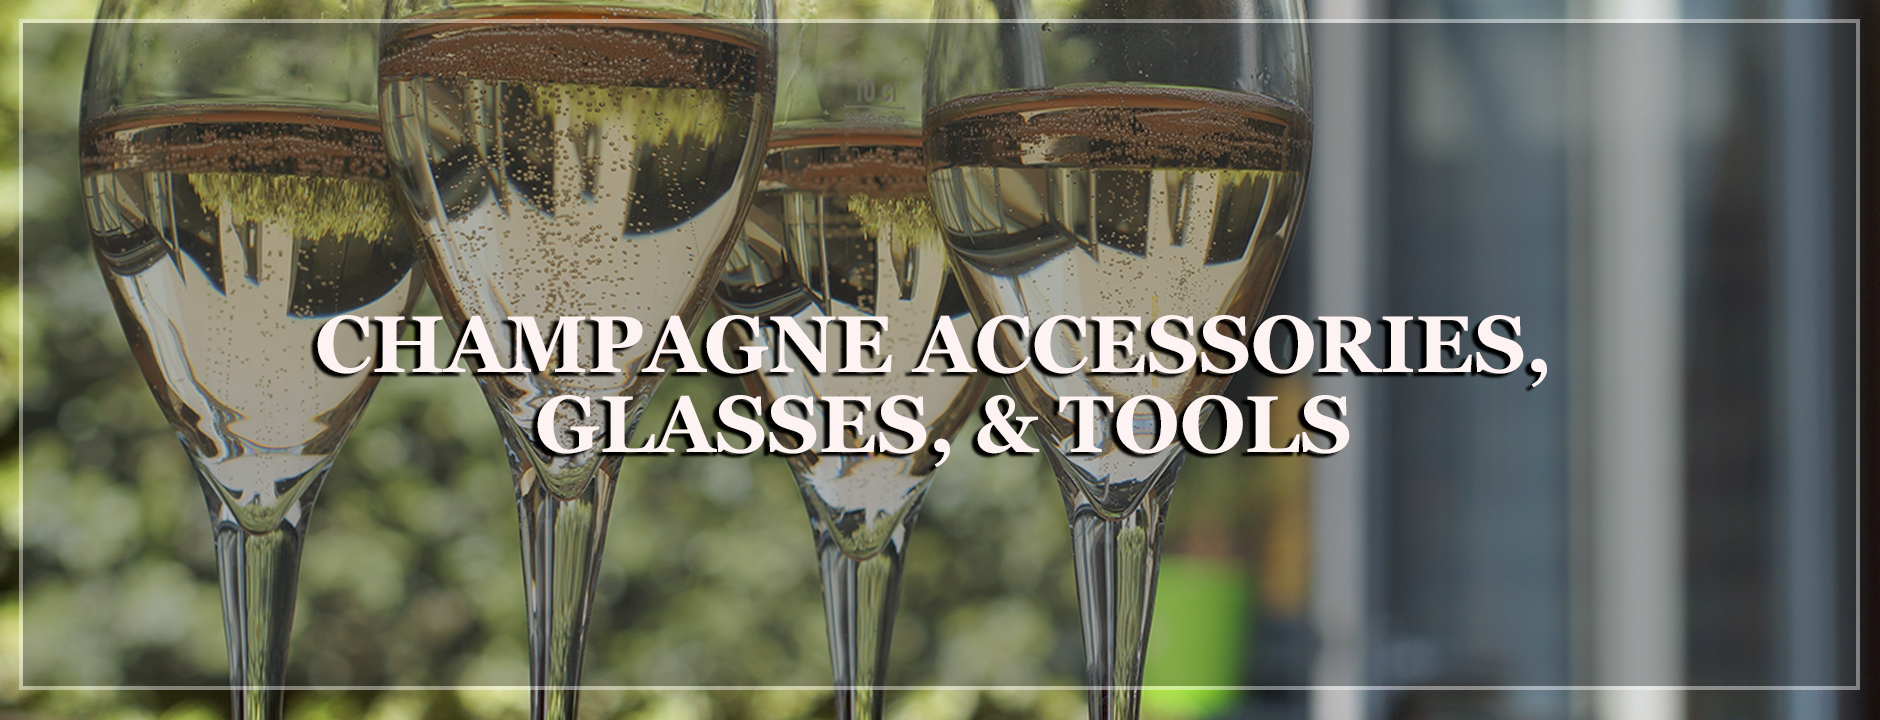 Champagne accessories - wine is life store